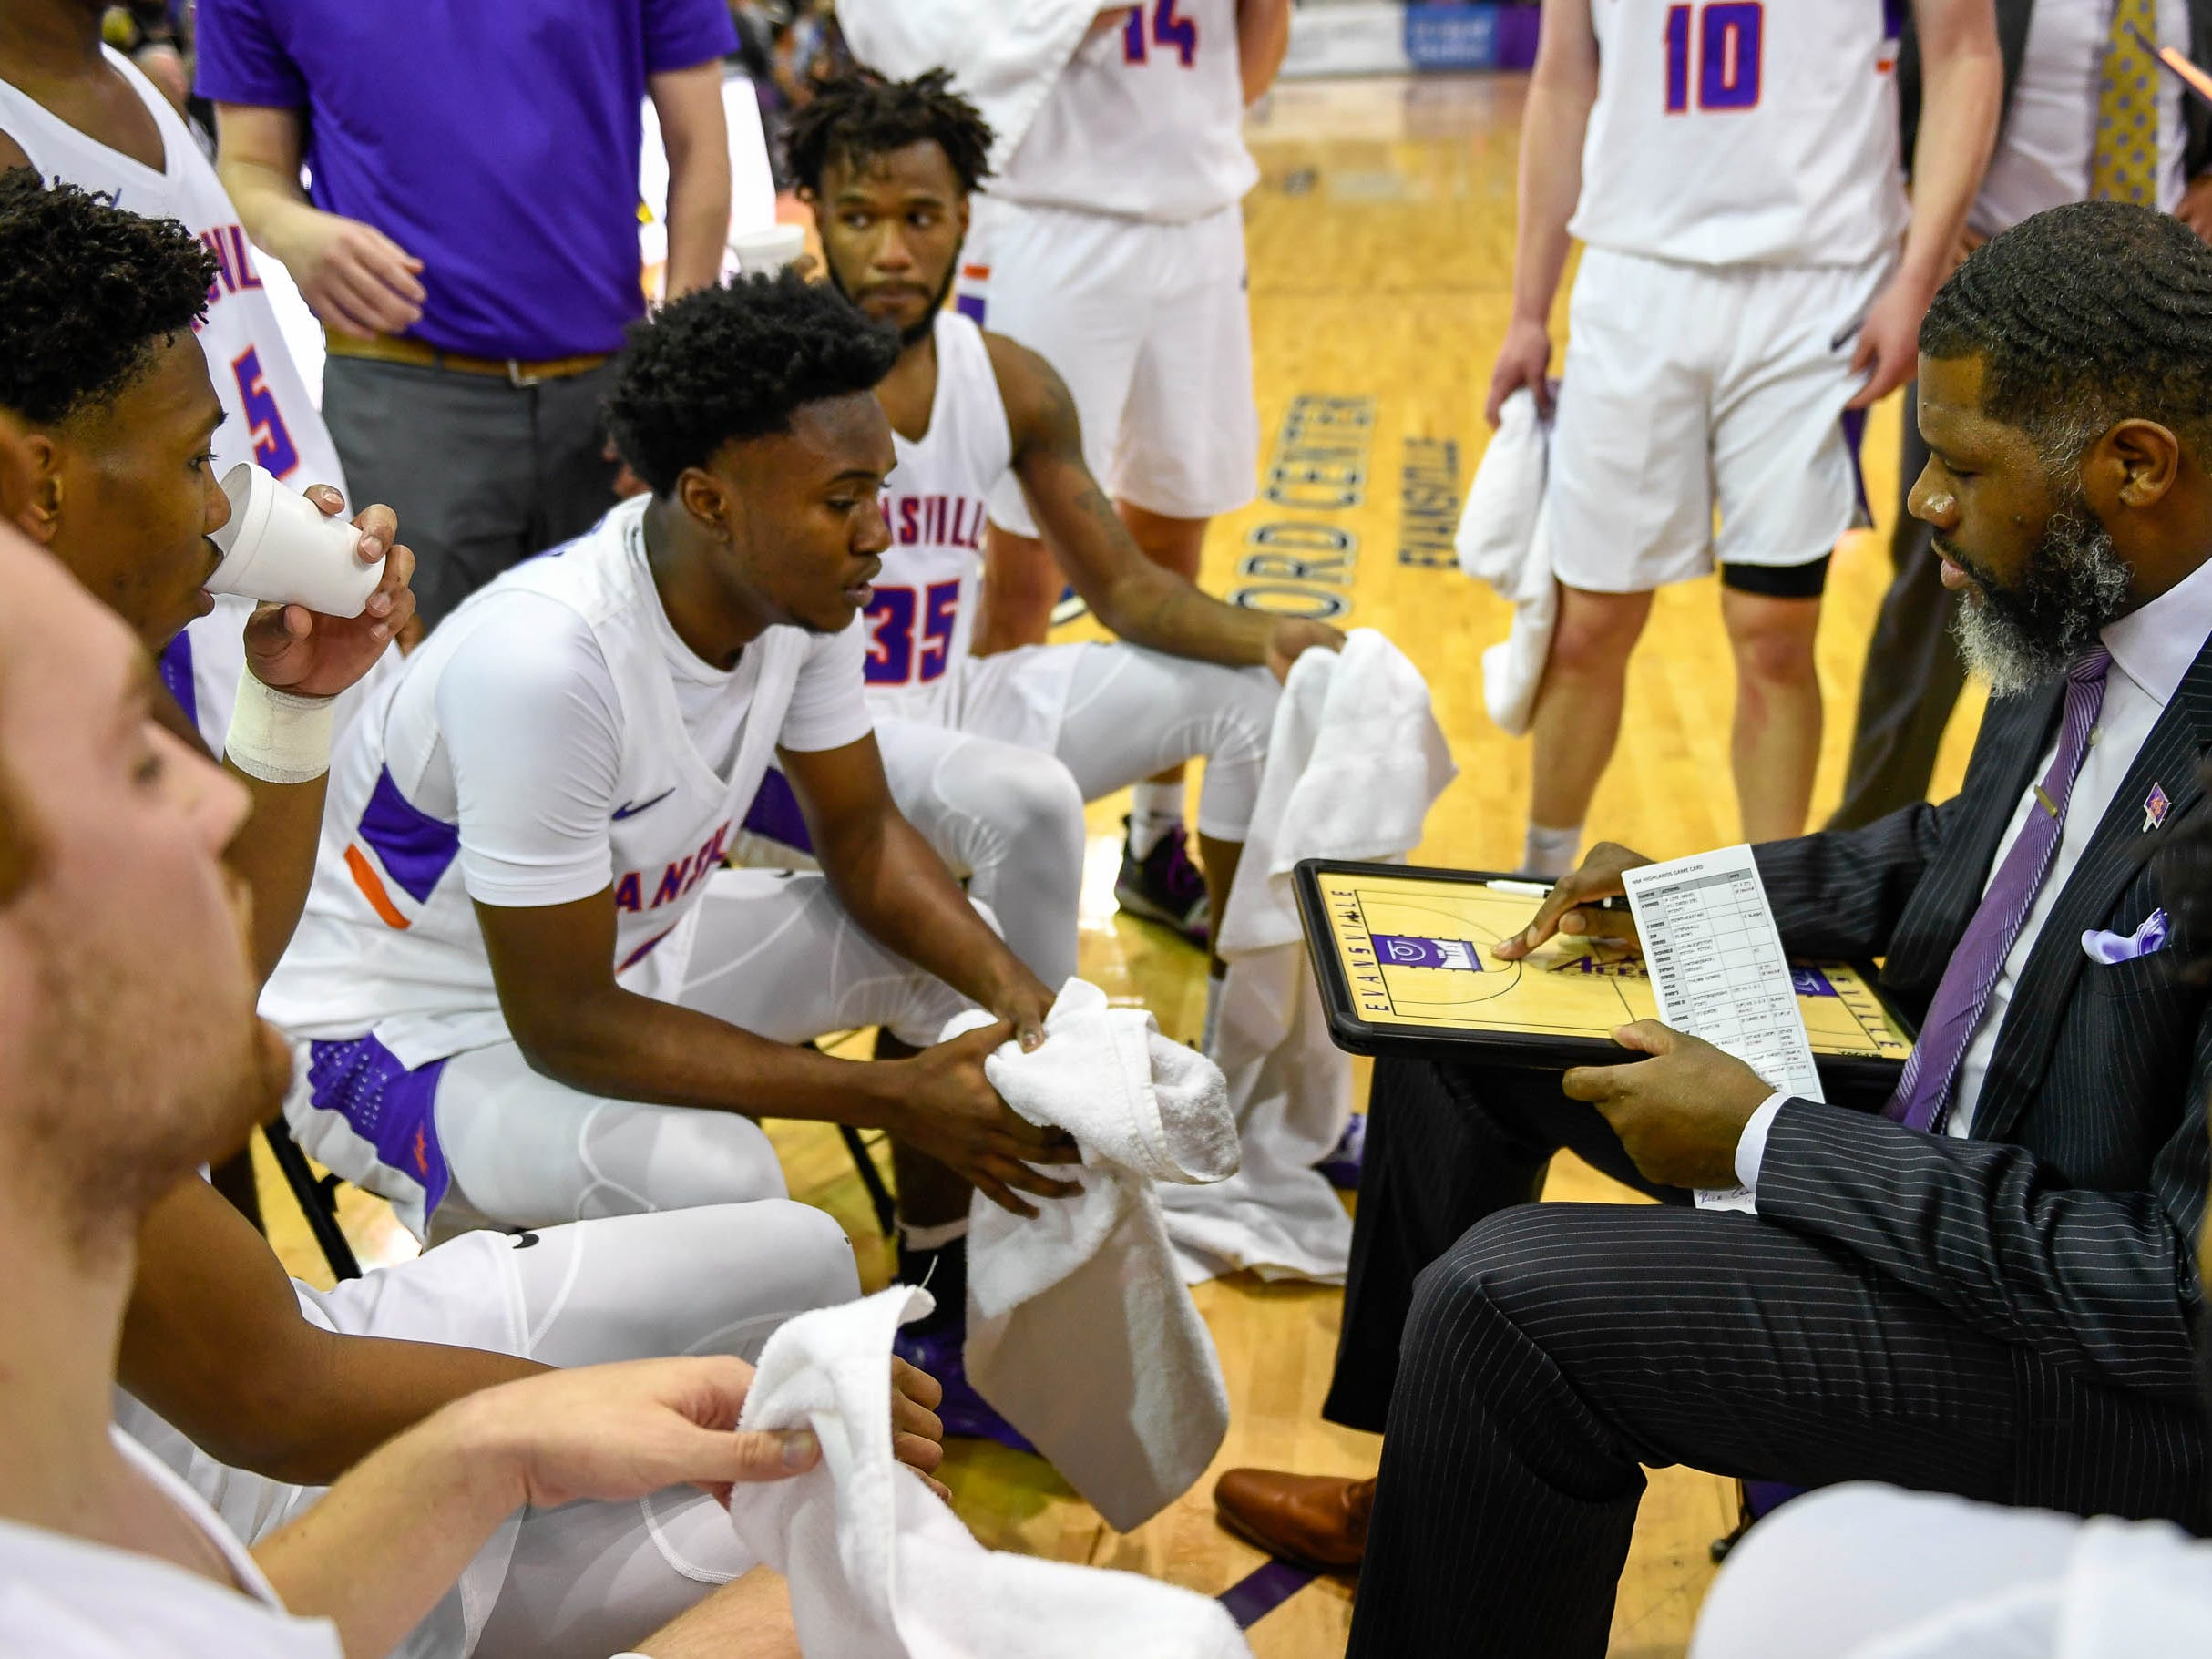 University of Evansville head coach Walter McCarty talks with his team during a timeout as the University of Evansville Purple Aces play the New Mexico Highlands Cowboys in a exhibition game at the Ford Center Saturday, November 3, 2018.